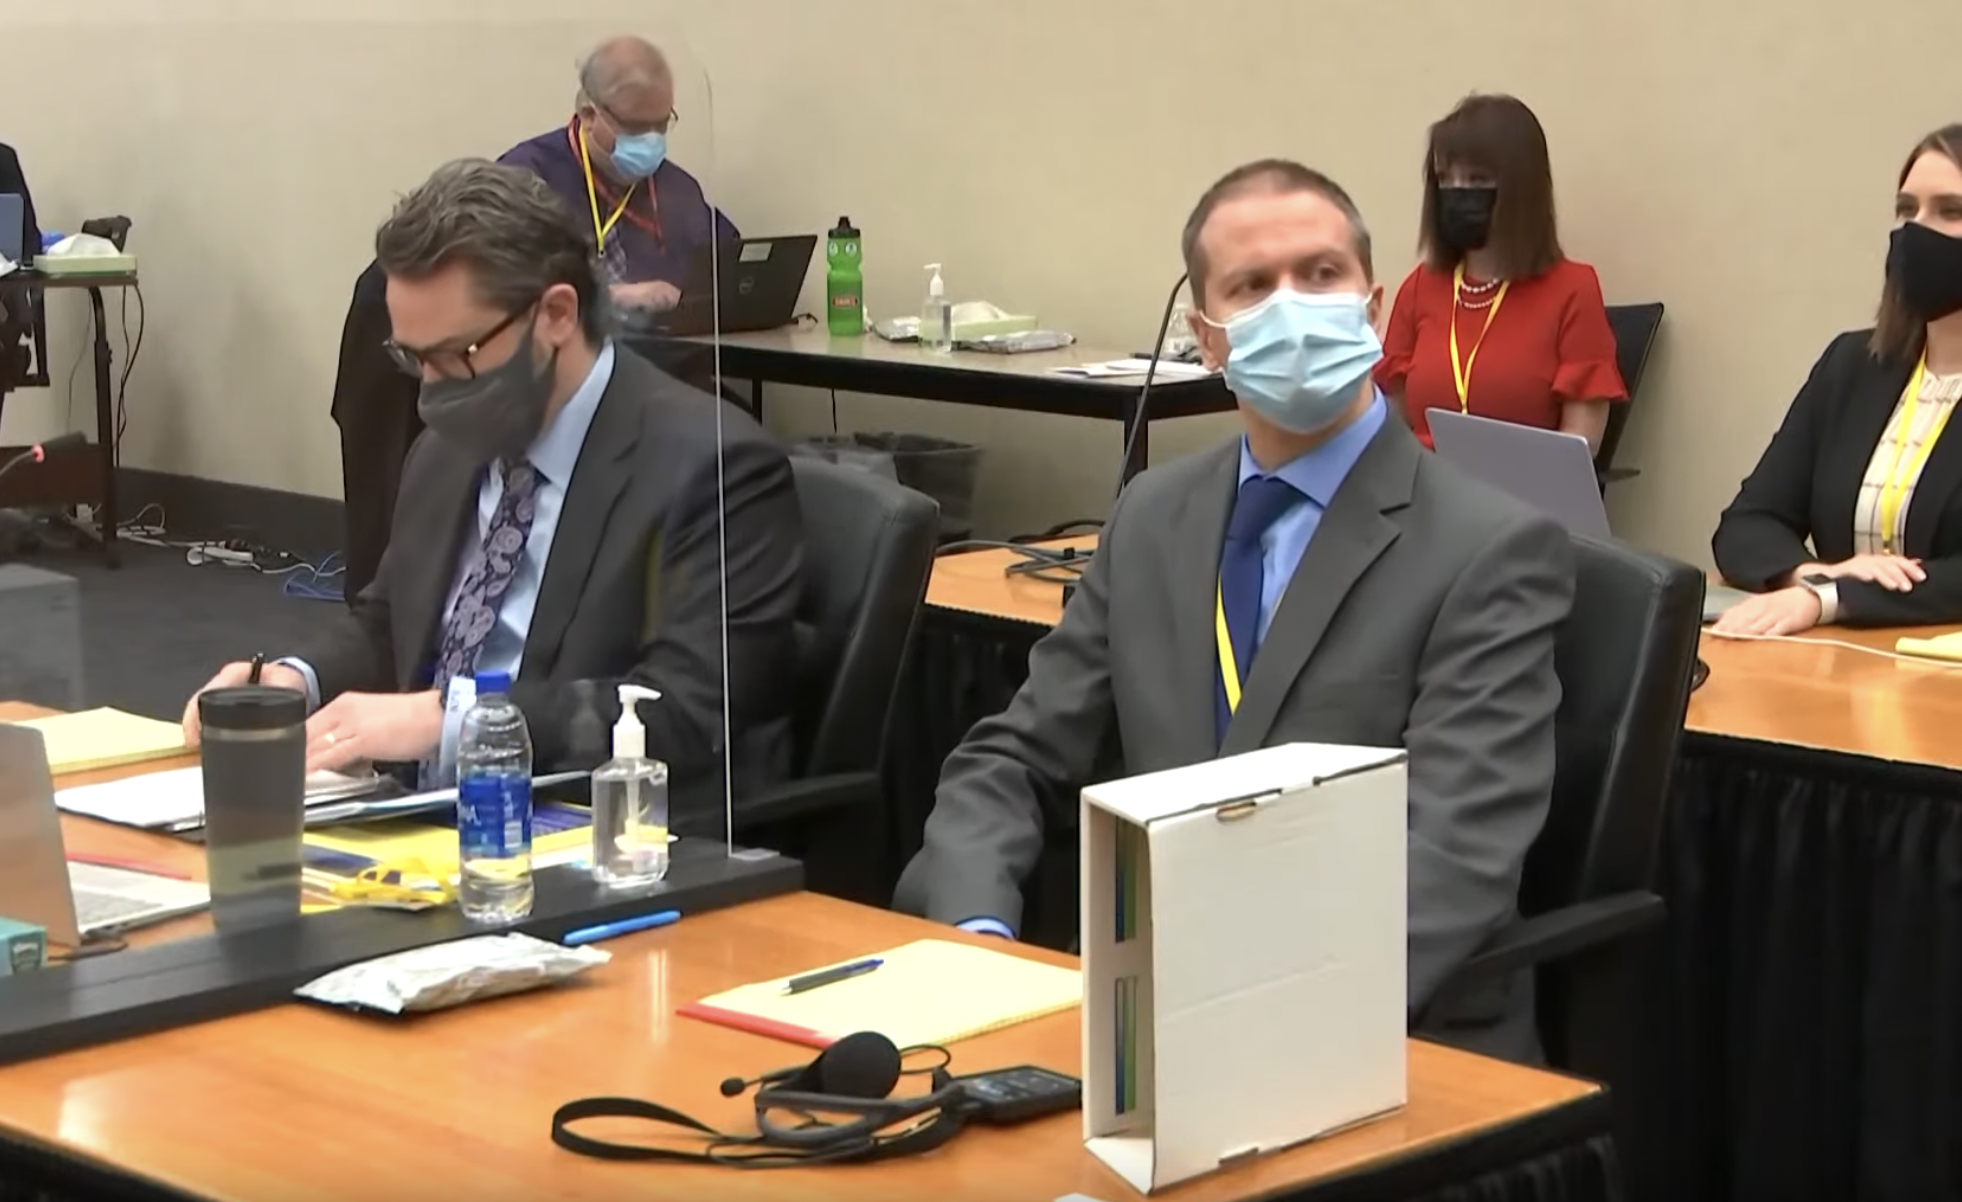 Chauvin trial begins with opening statements focused on cause of death, police training